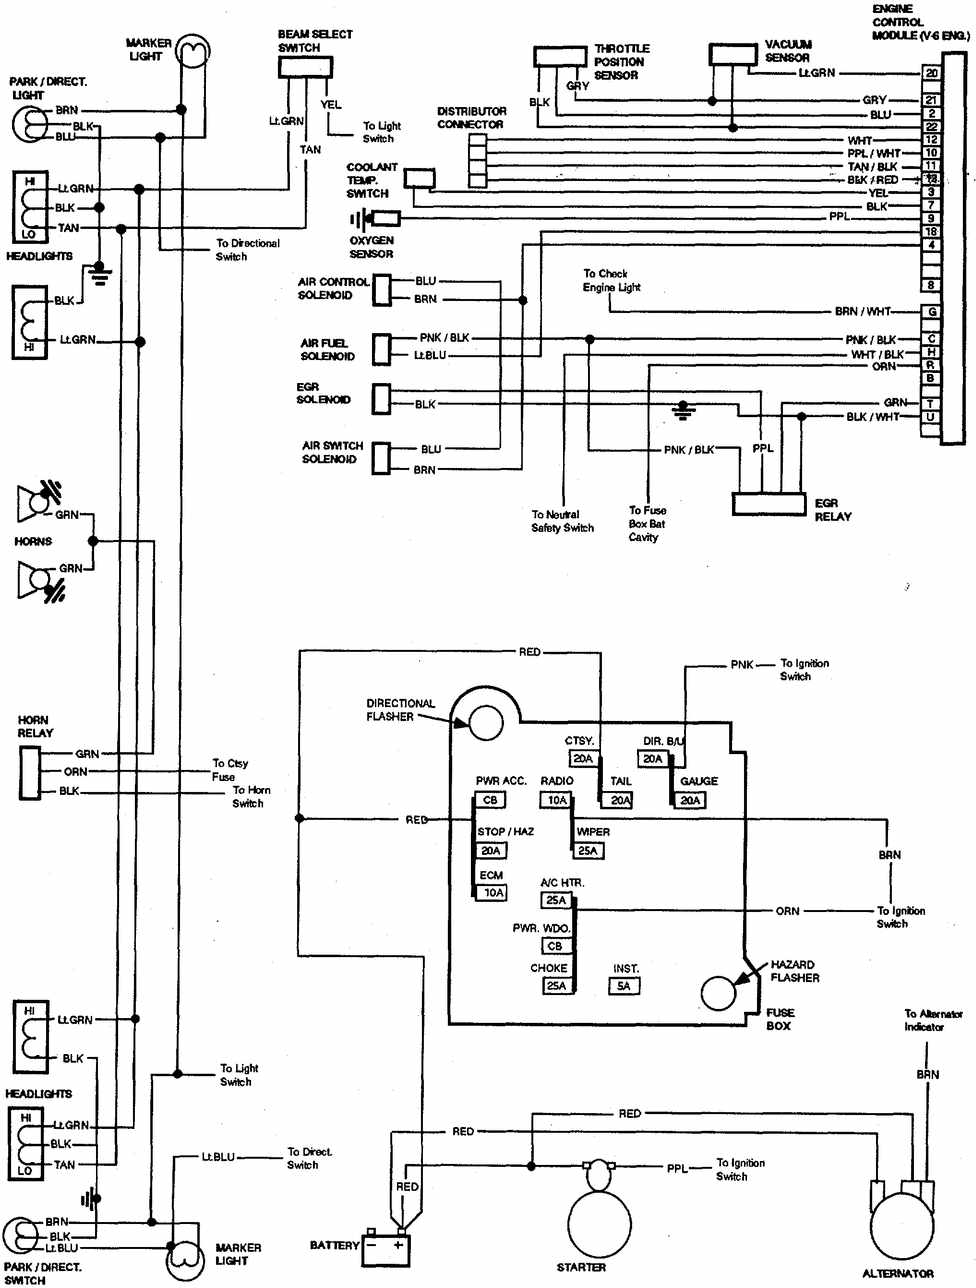 light wiring diagram gm truck get free image about wiring diagram